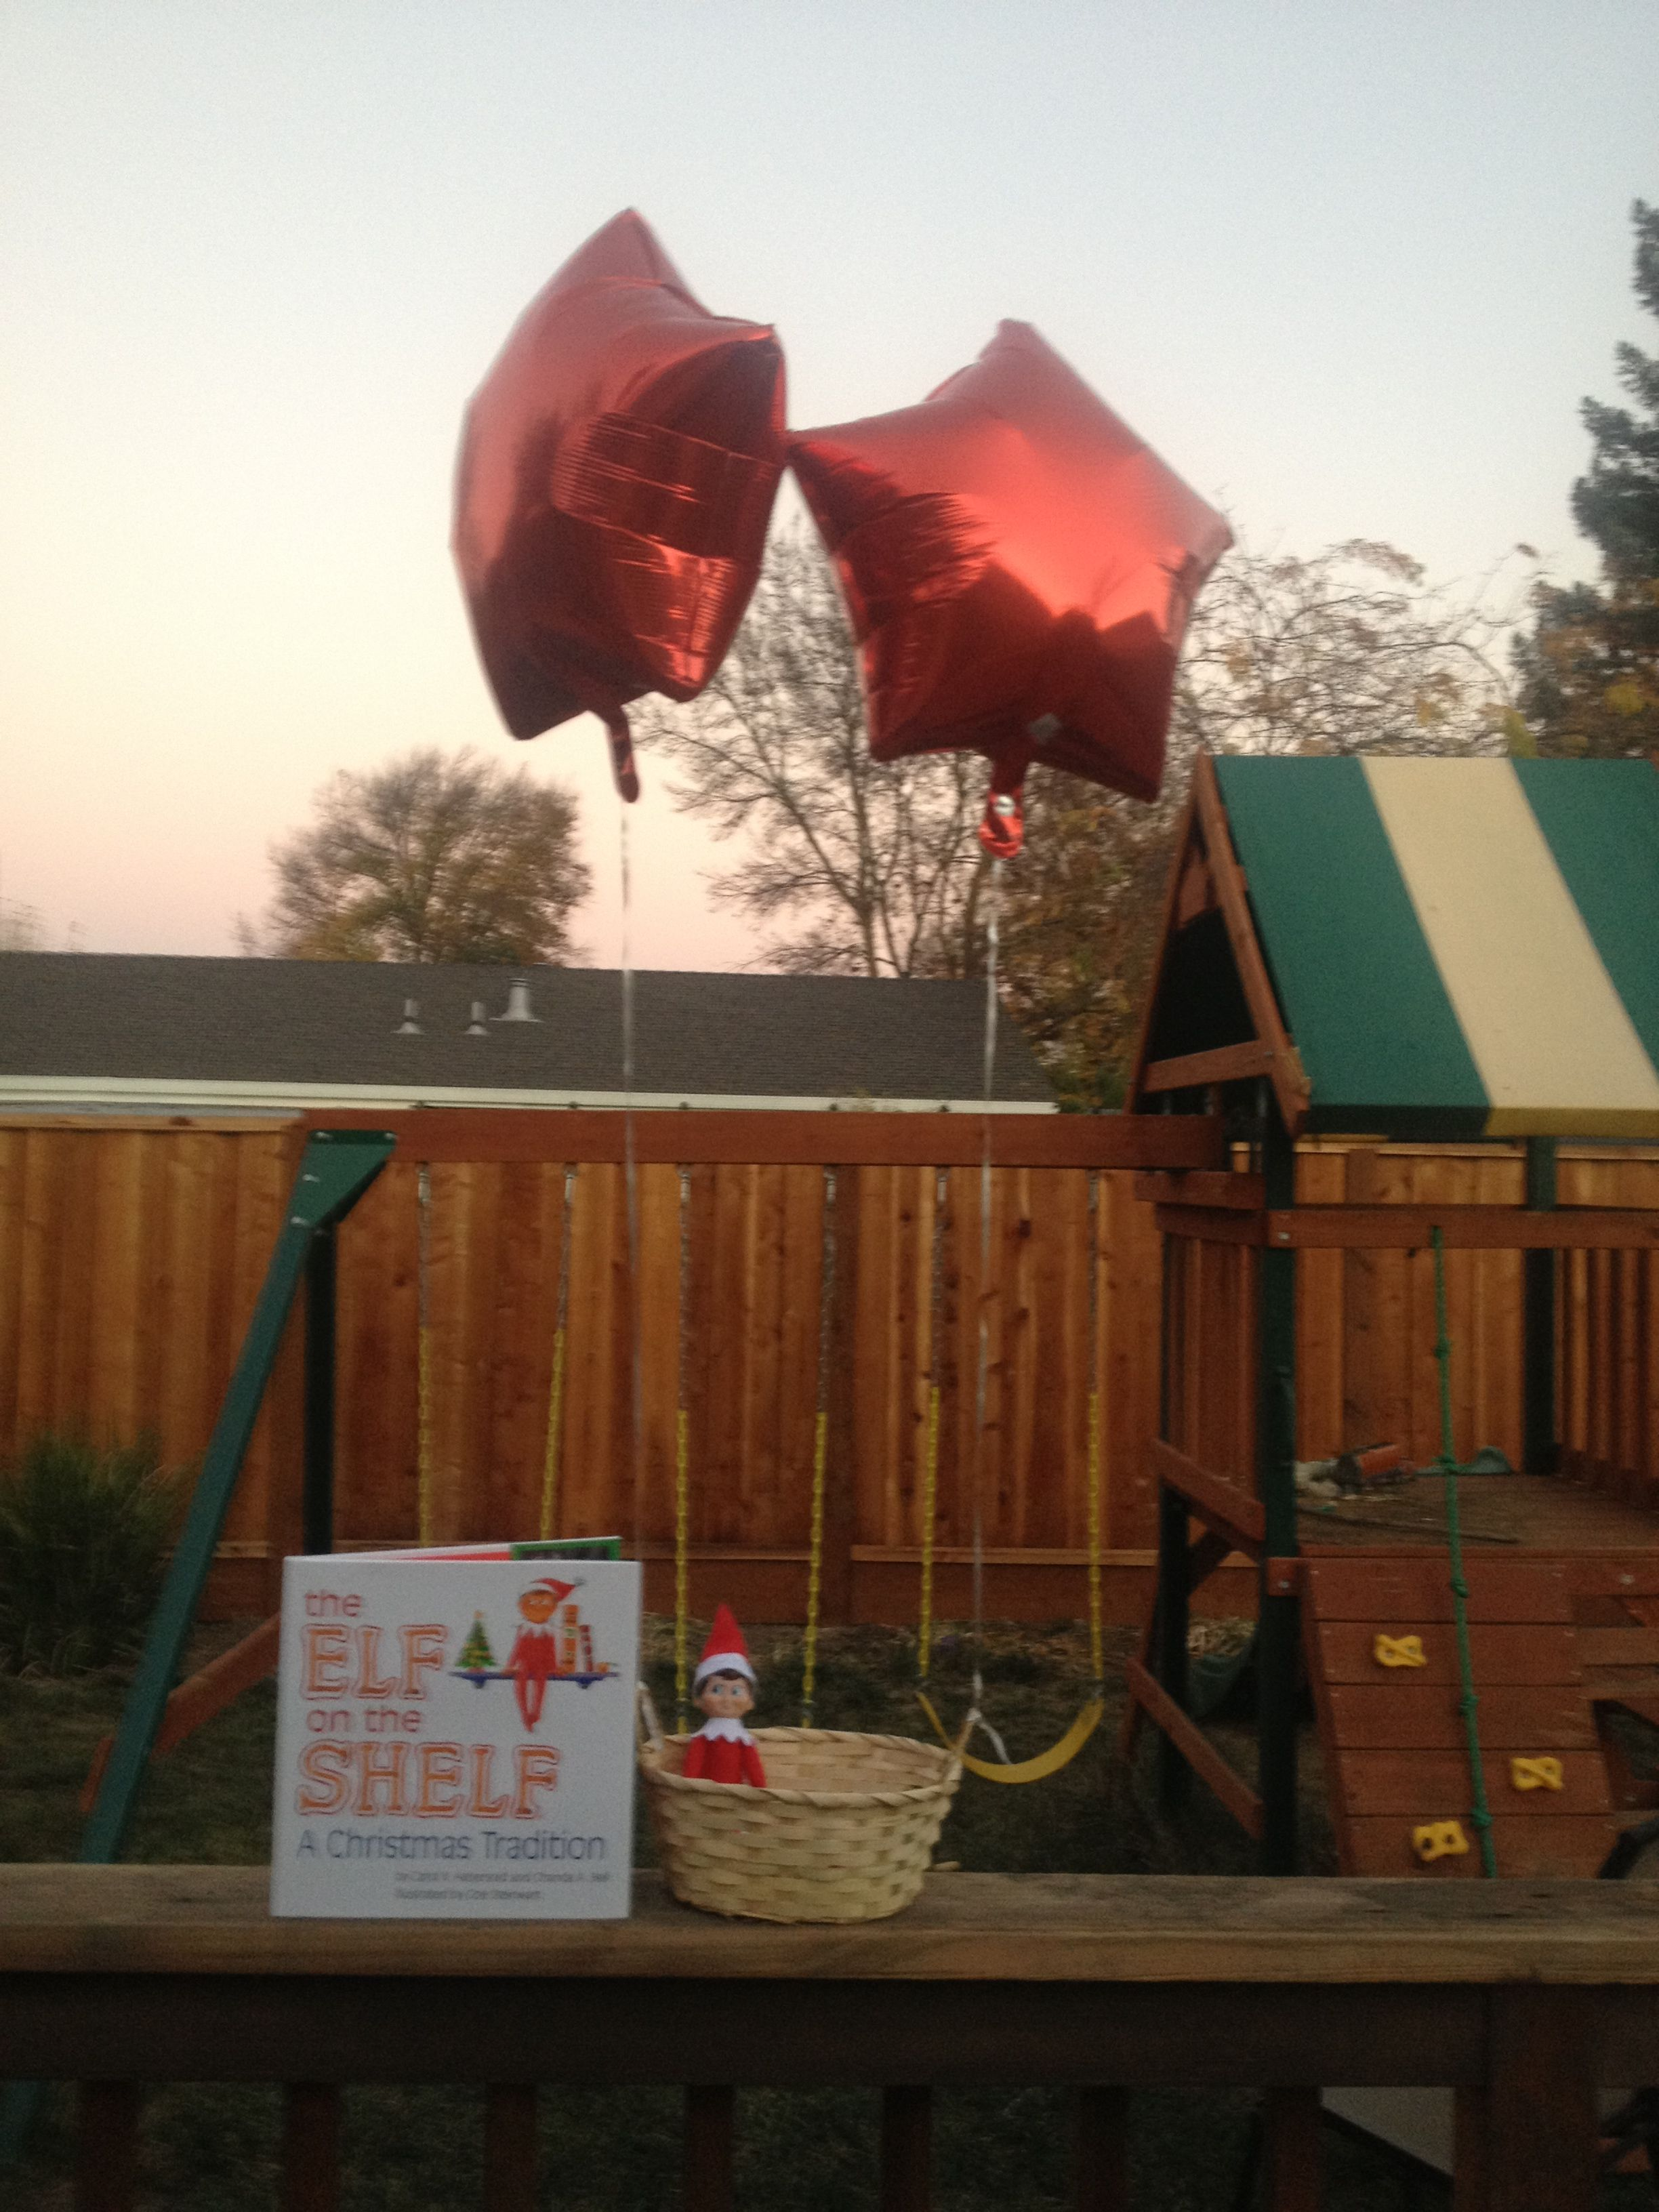 Elf on the shelf arrival by balloon basket / elf introduction to kids / Christmas Xmas fun for kids